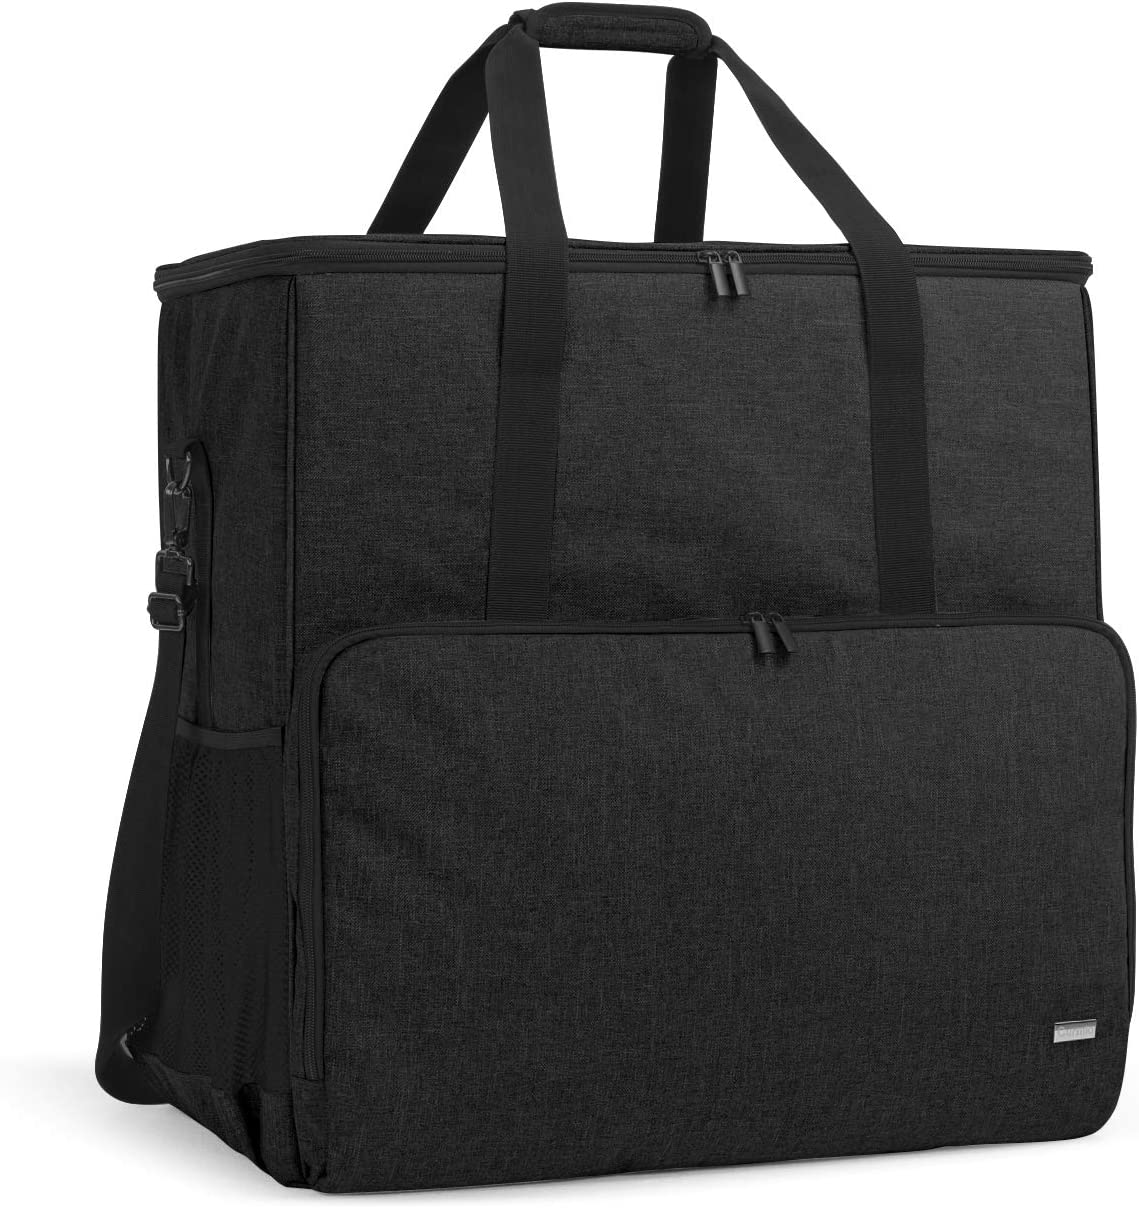 CURMIO Desktop Computer Tower and Monitor Carrying Case,Travel Tote Bag for PC Chassis, Monitor, Keyboard, Cable and Mouse, Earphone, Bag Only, Black